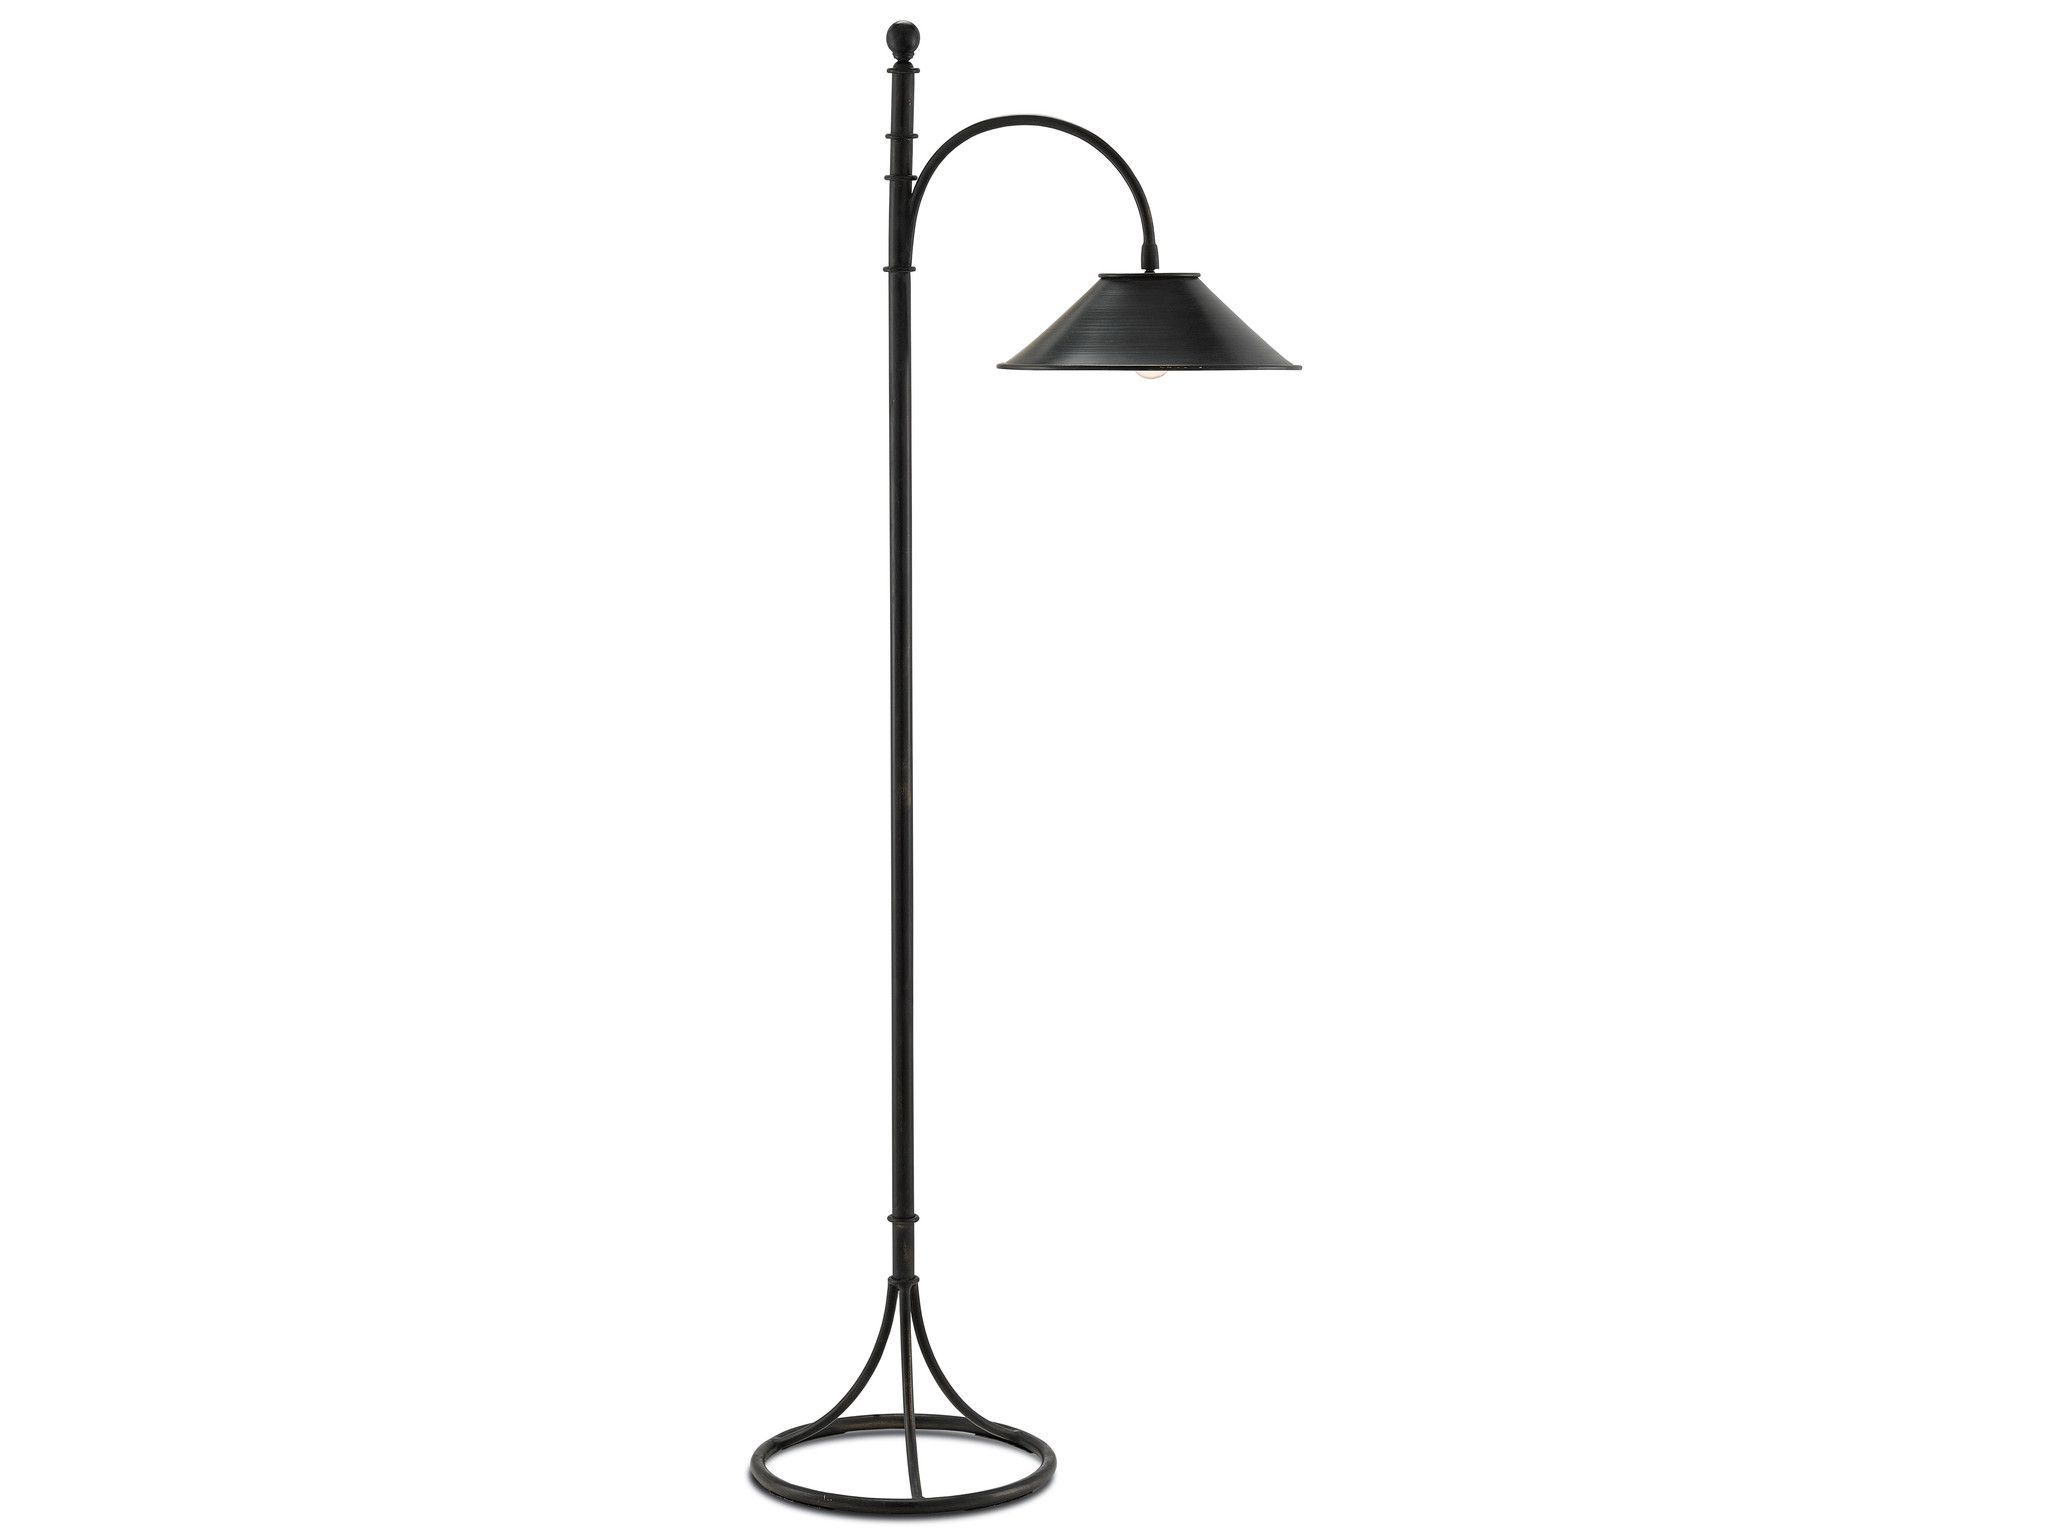 Vermay Floor Lamp In French Black Design By Currey Company Transitional Decor Transitional Chandeliers Transitional Floor Lamps